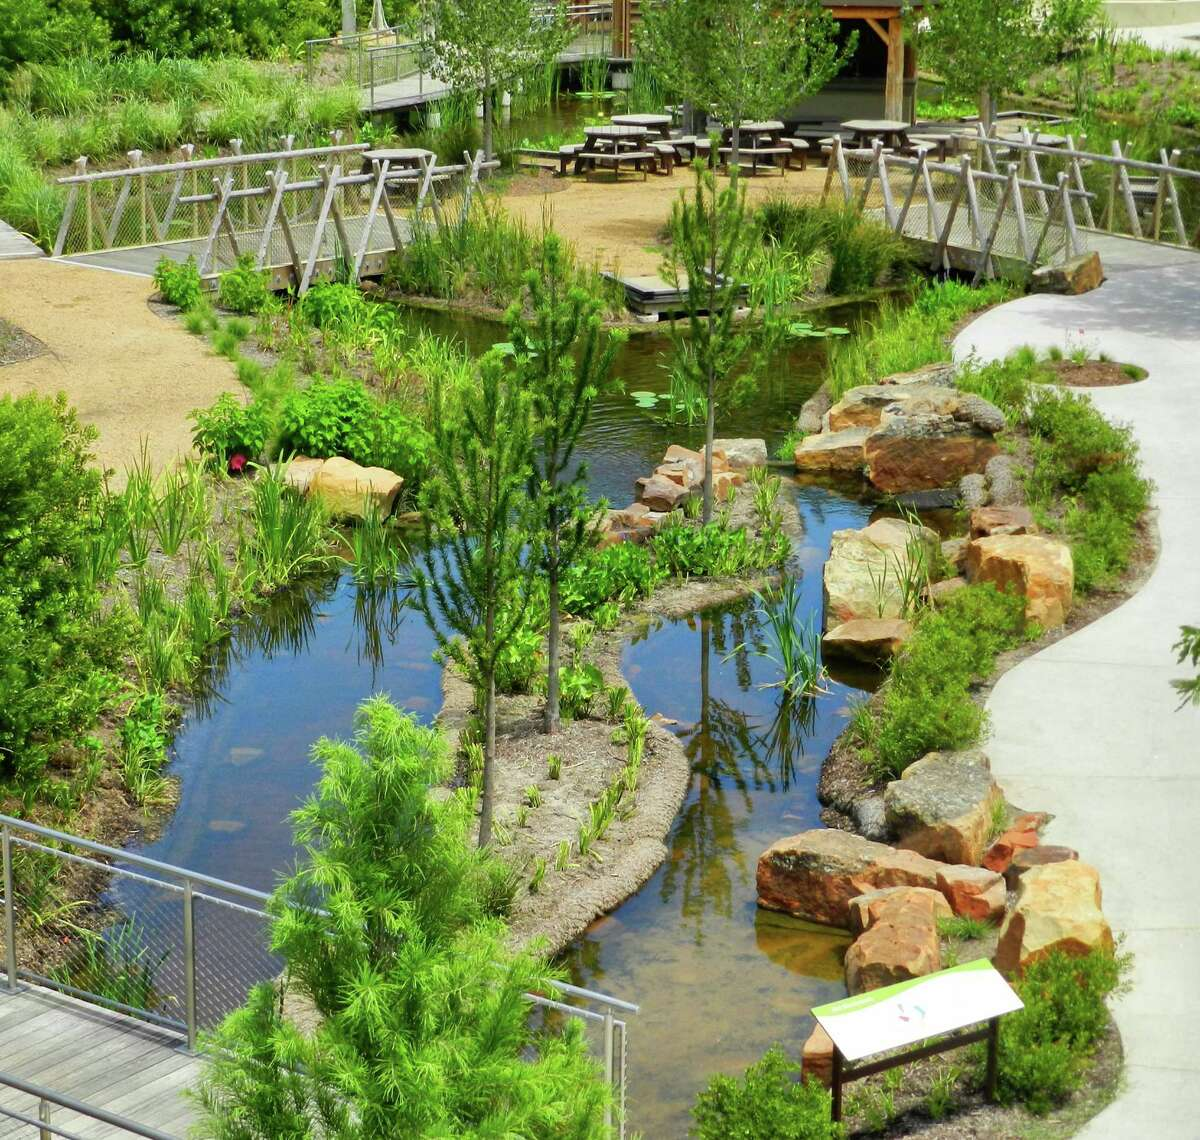 Kids can explore a watery ecosystem in the one-acre Texas Native Wetlands in the garden.